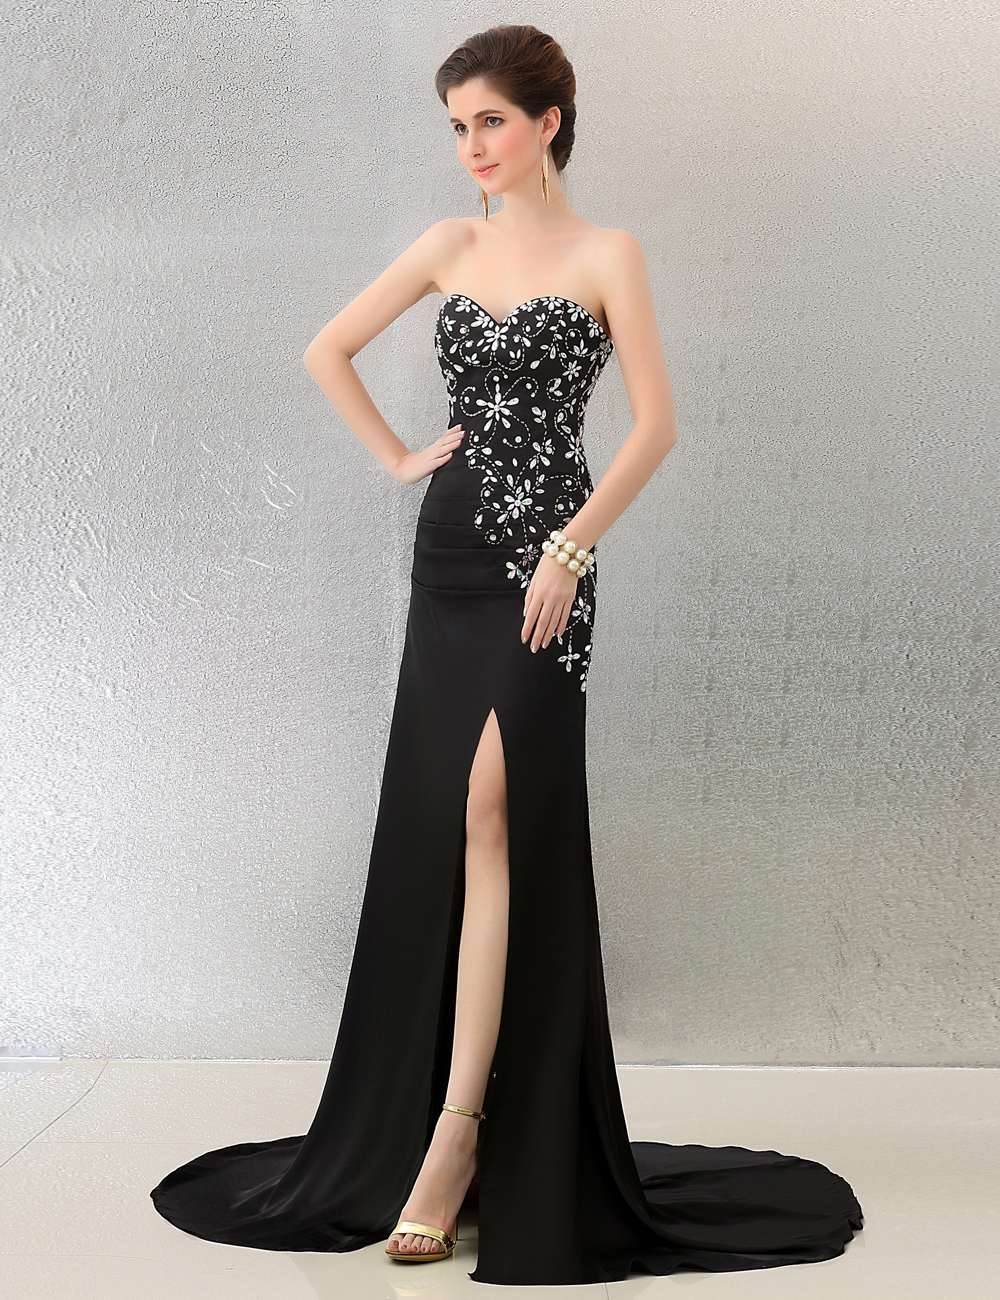 Luxury Black Gala Gown Elaboration - Images for wedding gown ideas ...